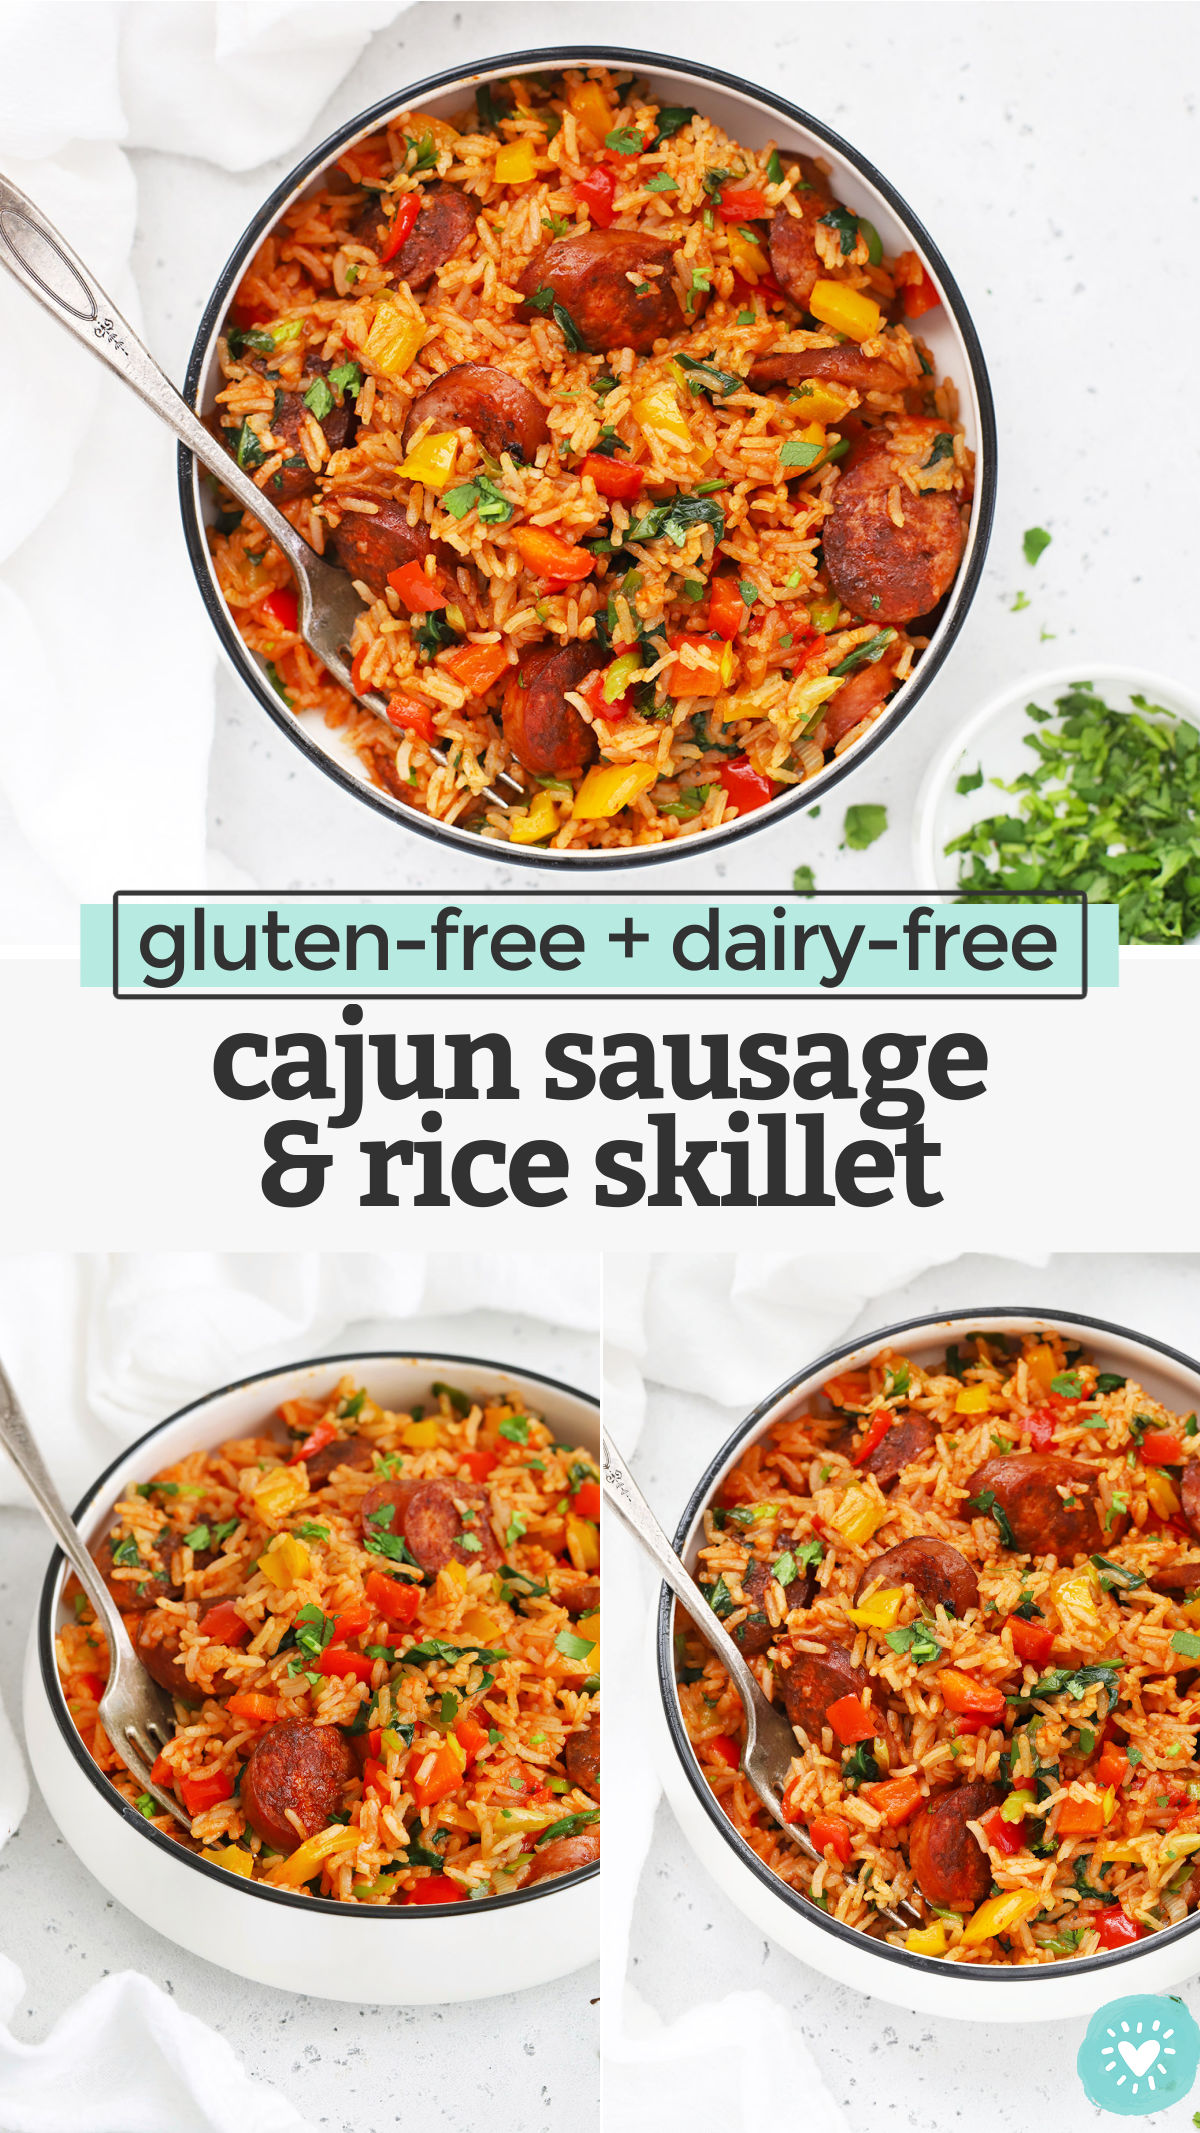 Cajun Sausage and Rice Skillet - This easy one pan dinner comes together in a flash, but packs some serious flavor! A family-friendly dinner that's easy enough to make any night of the week! (Gluten-Free, Dairy-Free) // One-Pan Dinner // Easy Dinner // Cajun Rice // Gluten-Free Dinner #glutenfree #easydinner #rice #onepan #skillet